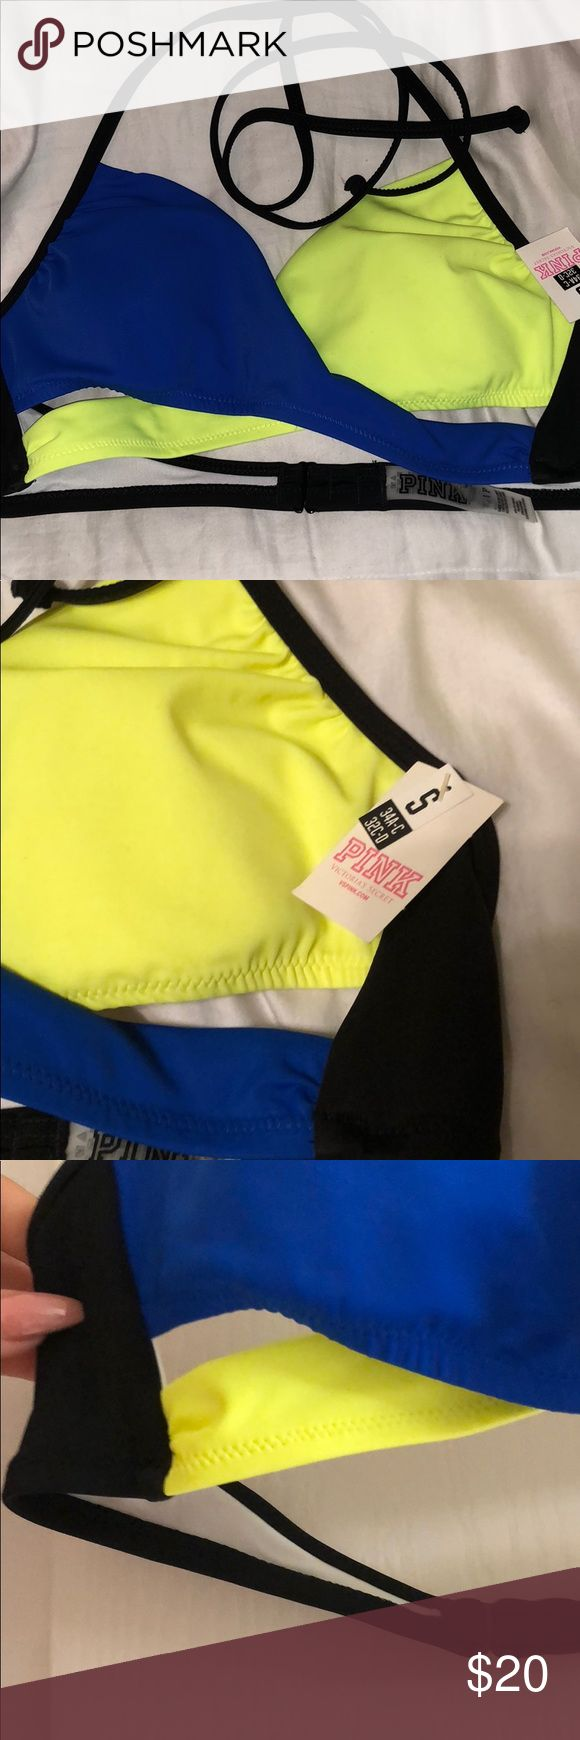 NWT VS Pink brand Blue and Hot Yellow Bikini Top Cute royal blue and hot yellow bikini top. Black back and straps. Ties around the neck with a fasten in the back. NWT never worn. Small cut outs in the front.  Can be worn with blue,hot yellow or even black bikini bottoms. Size S (34A-C or 32 C-D) Removable padding Victoria's Secret Swim Bikinis